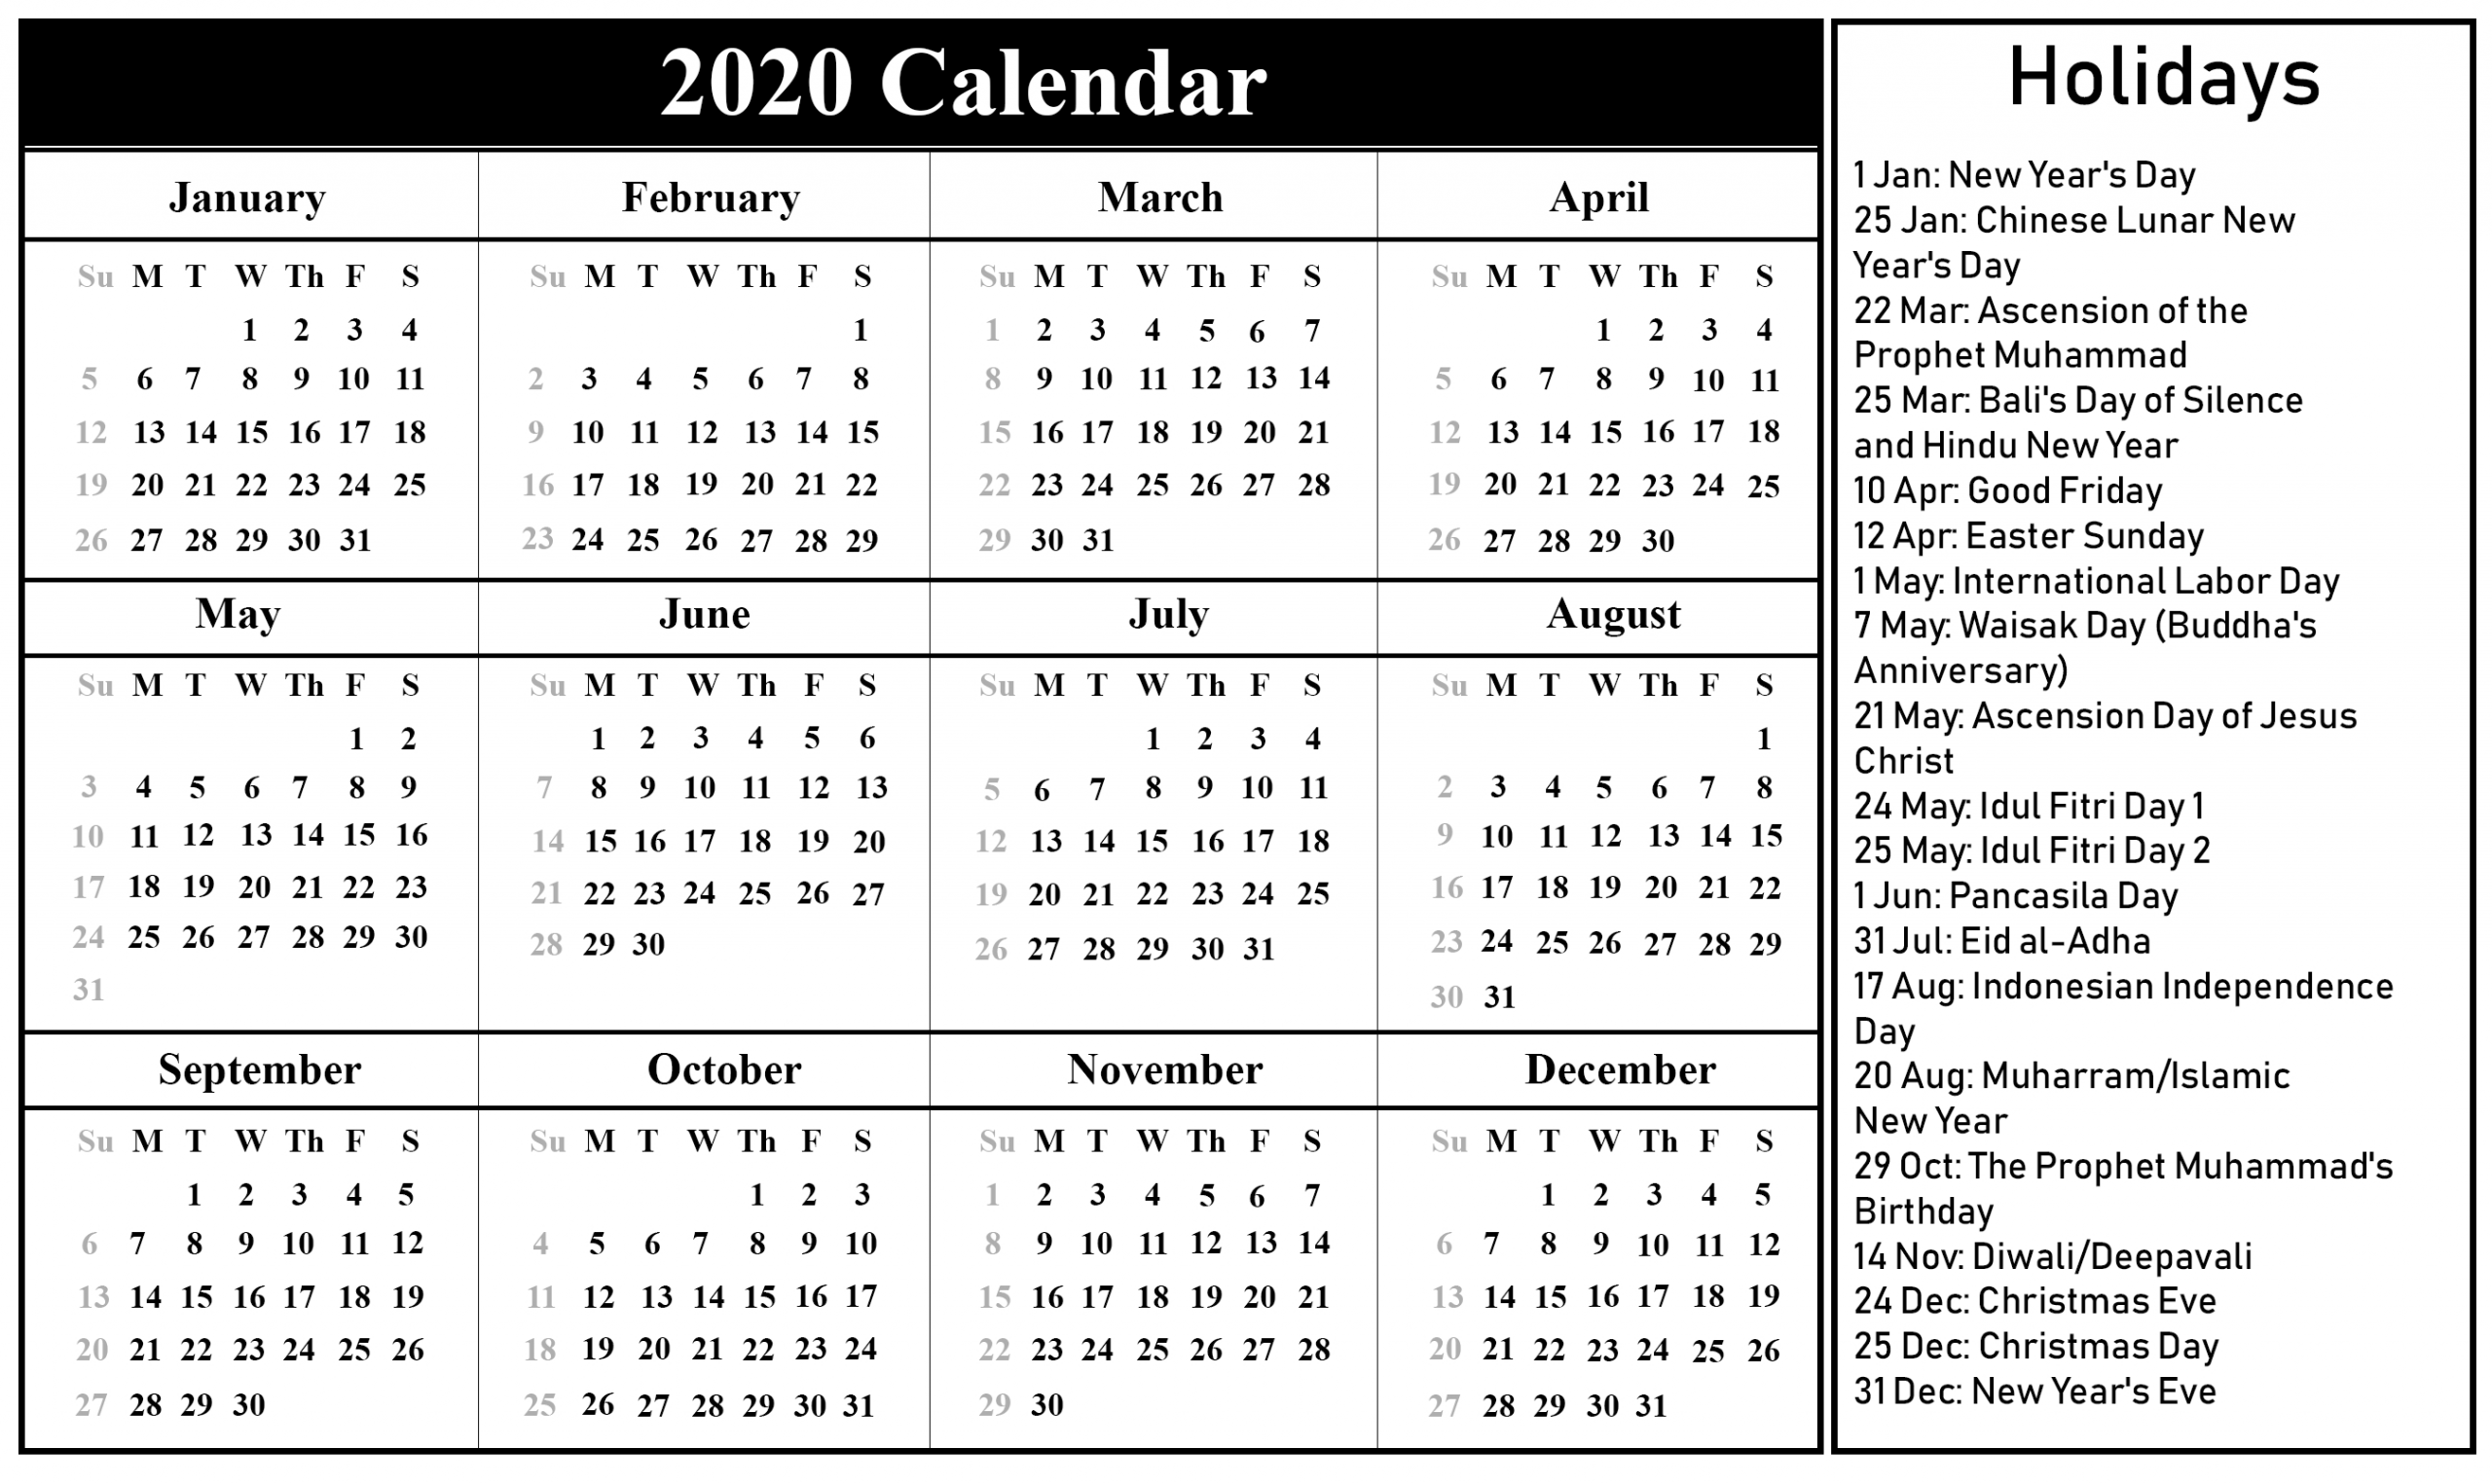 Public Holidays In Indonesia 2020 | Printable February